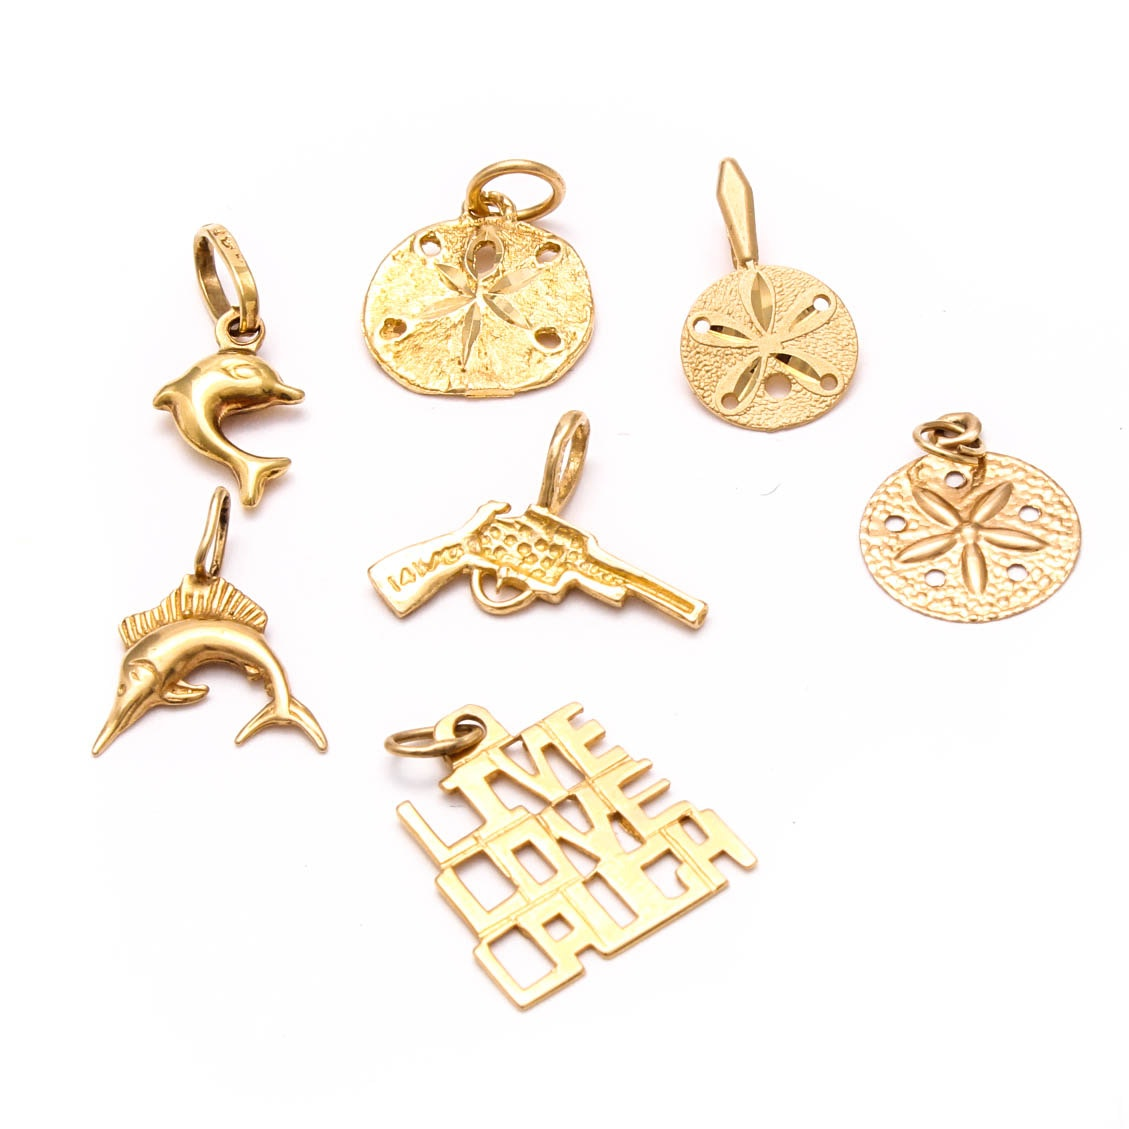 14K and 18K Yellow Gold Charms